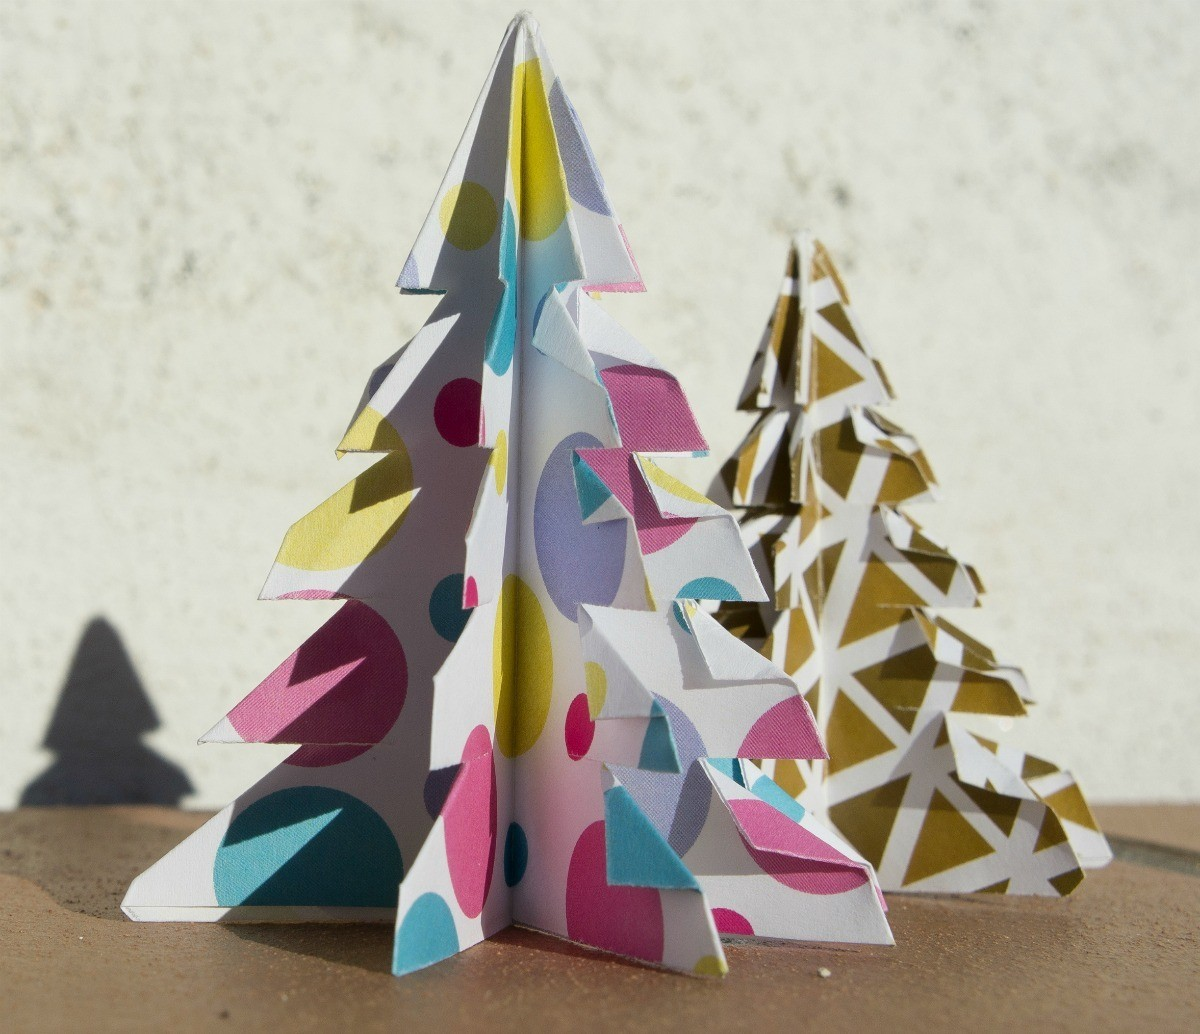 Metal Tabletop Christmas Tree: Making Tabletop Christmas Trees